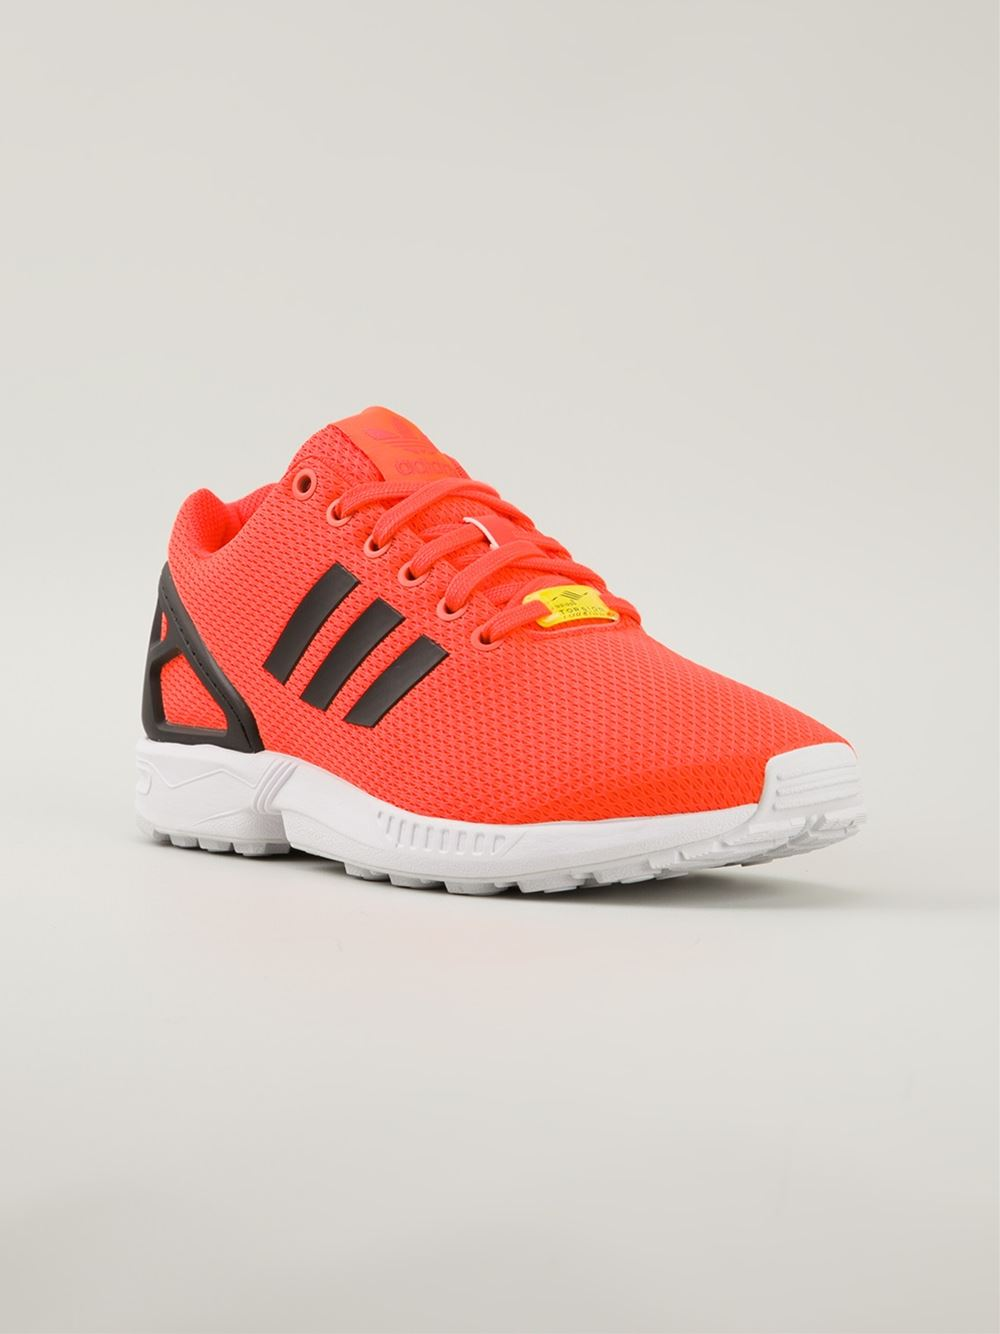 Adidas 'zx Flux' Trainers - Gallery Madrid - Farfetch.com